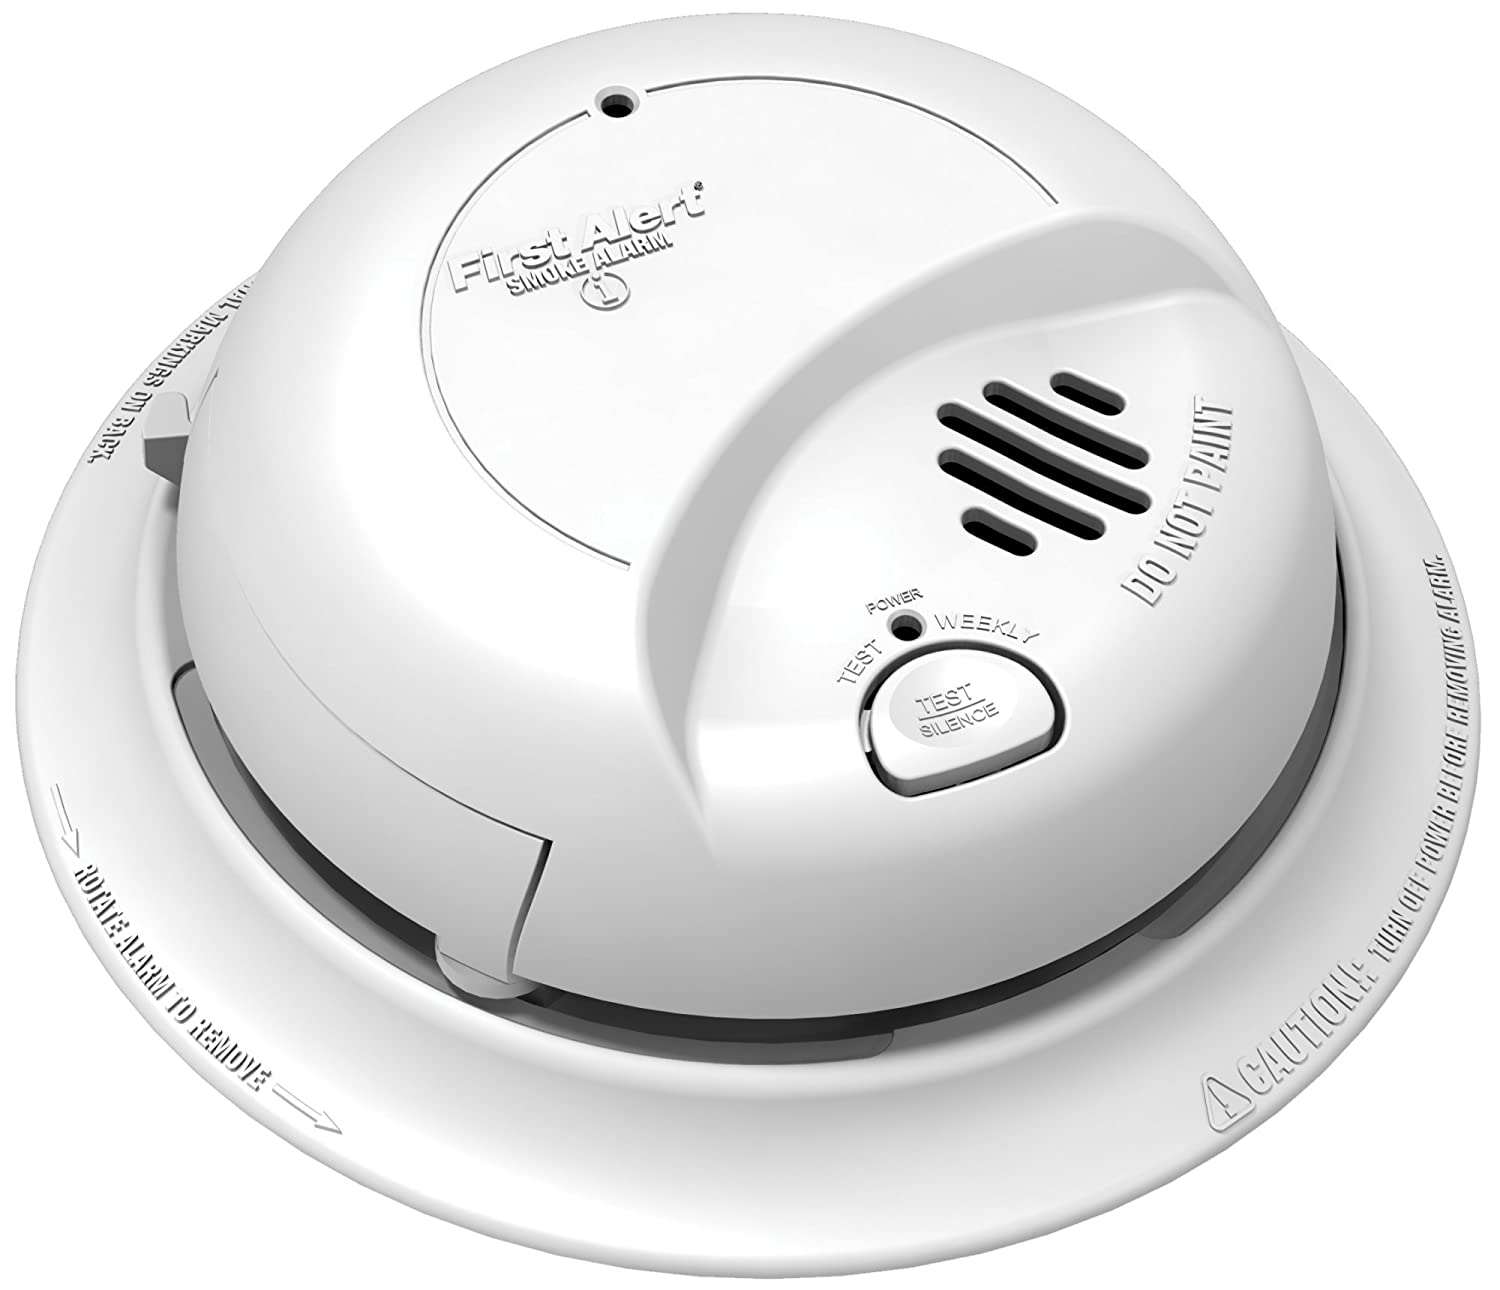 First Alert BRK Brands 9120B Hardwired Smoke Alarm with Battery Backup 4 Pack